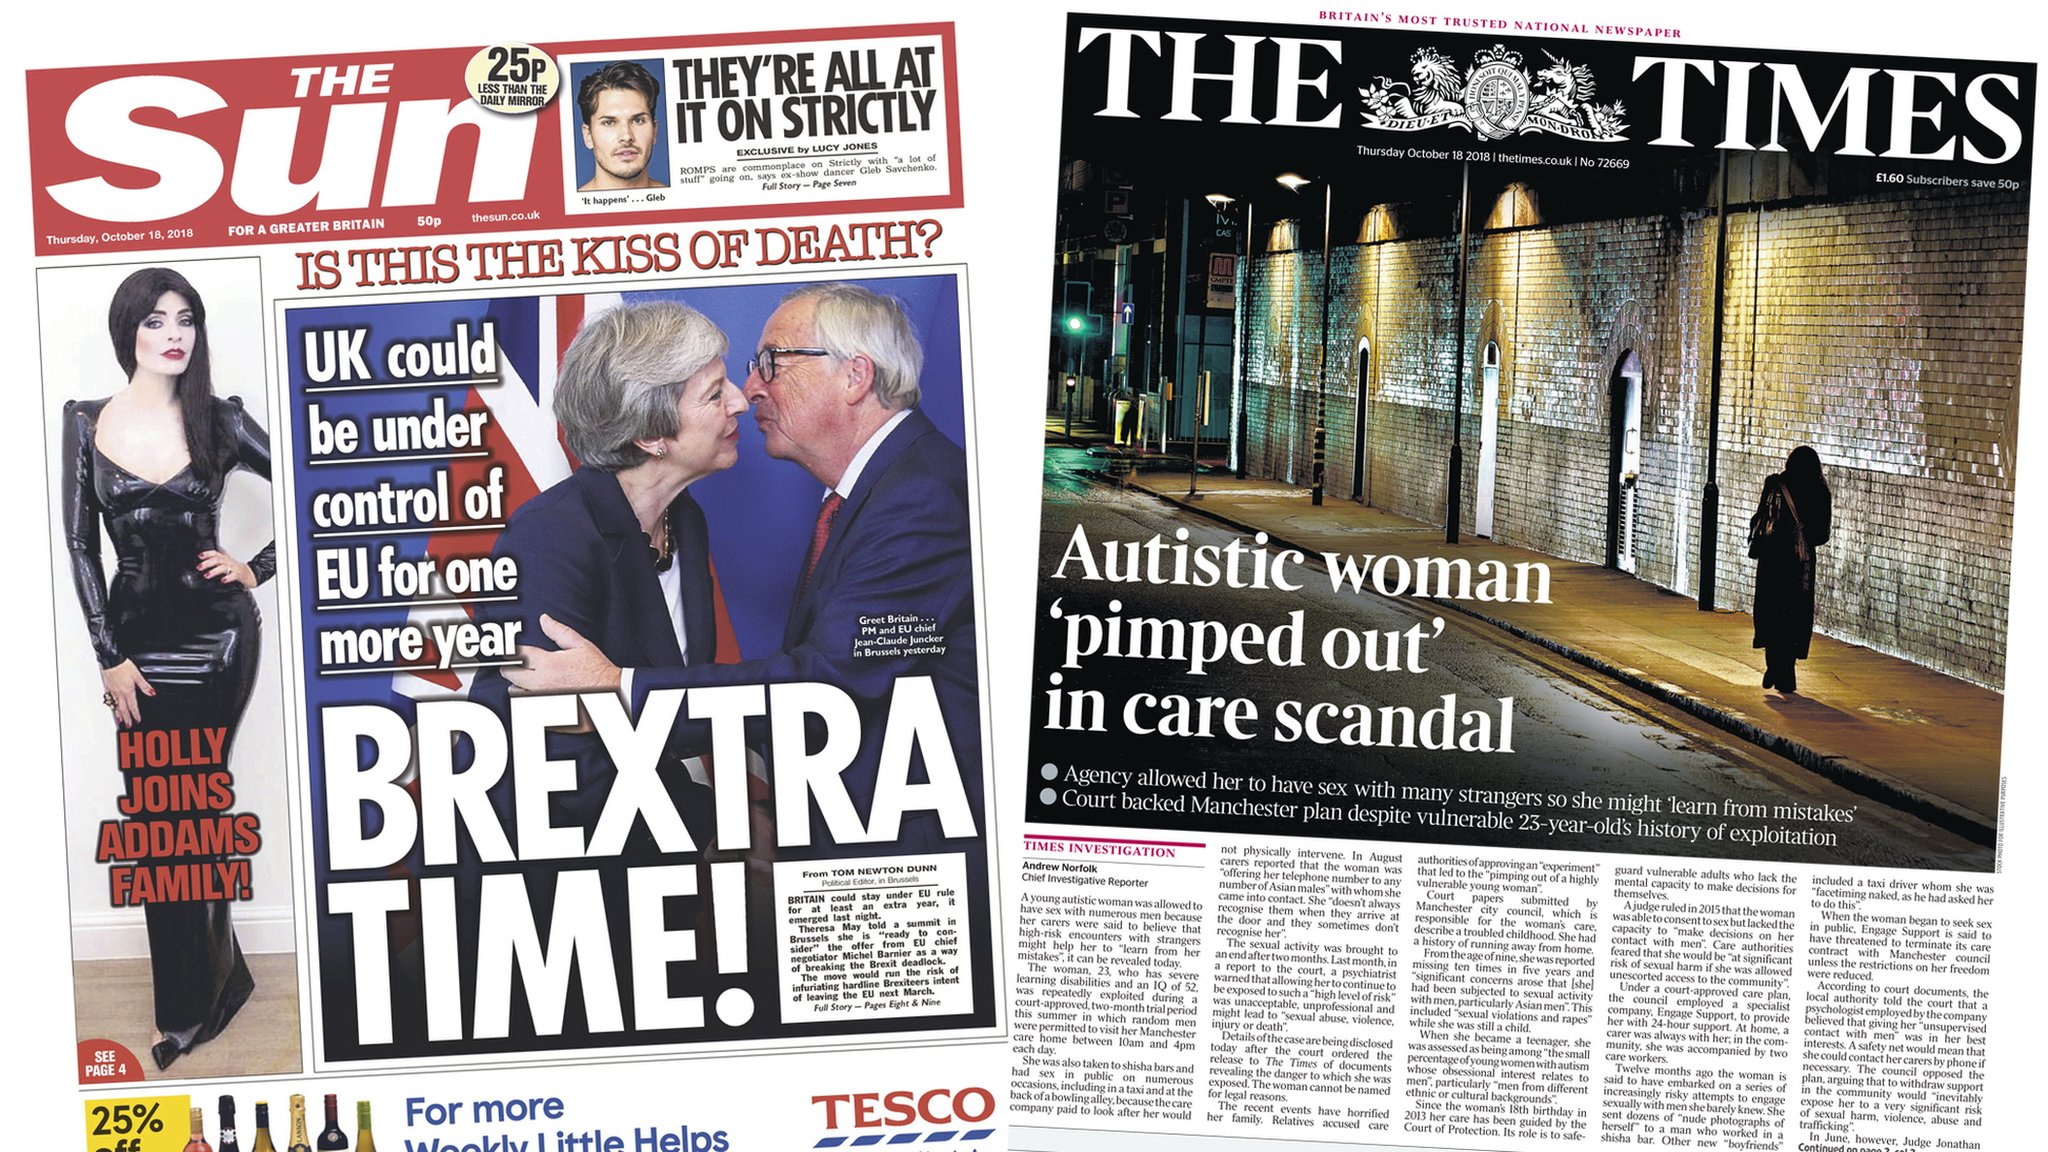 "Newspaper headlines: 'Brextra time!"" and 'sex care scandal'"